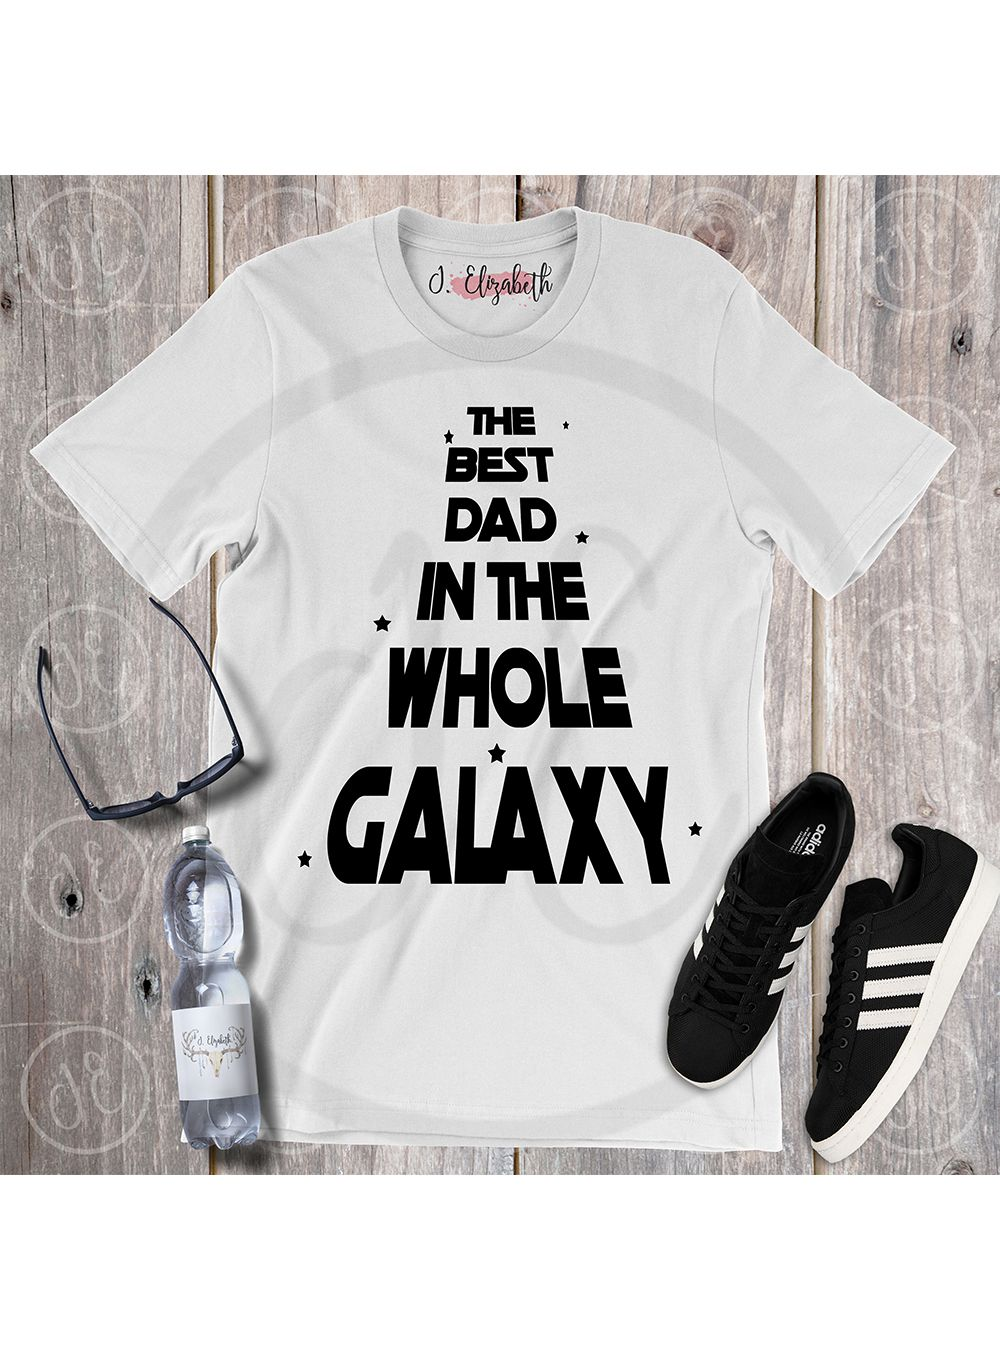 The Best BROTHER In The Galaxy T-Shirt Mens Father Shirt